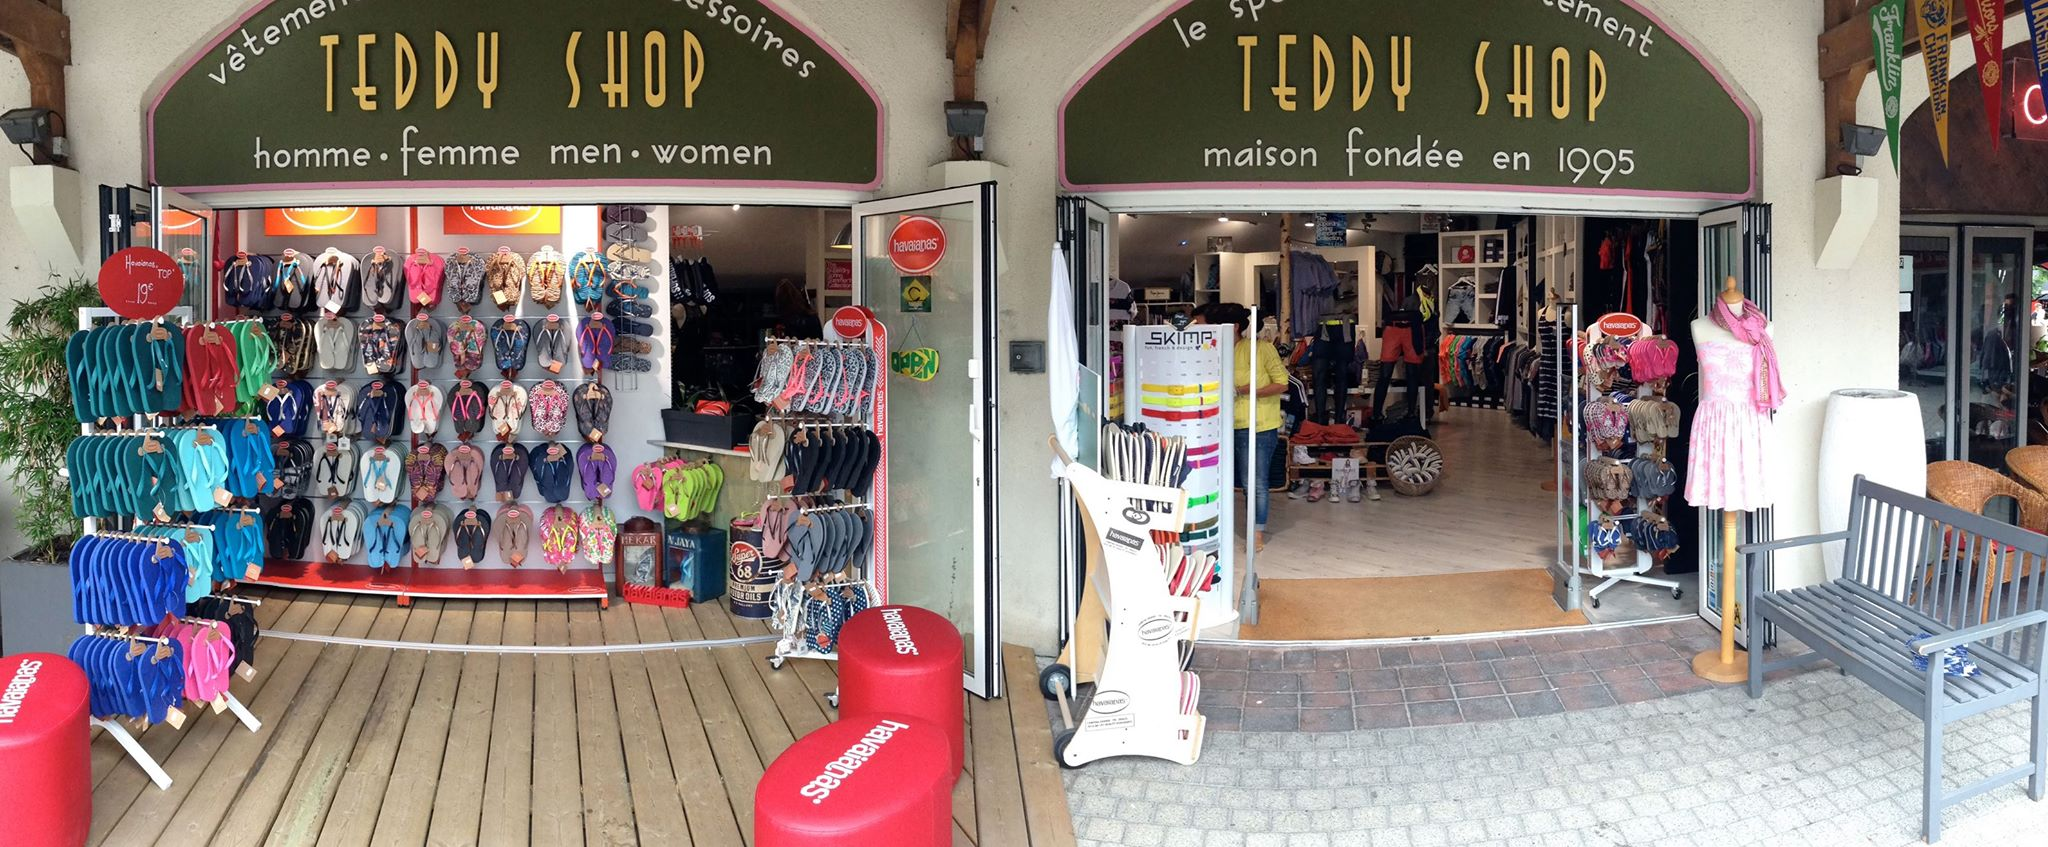 Teddy Shop